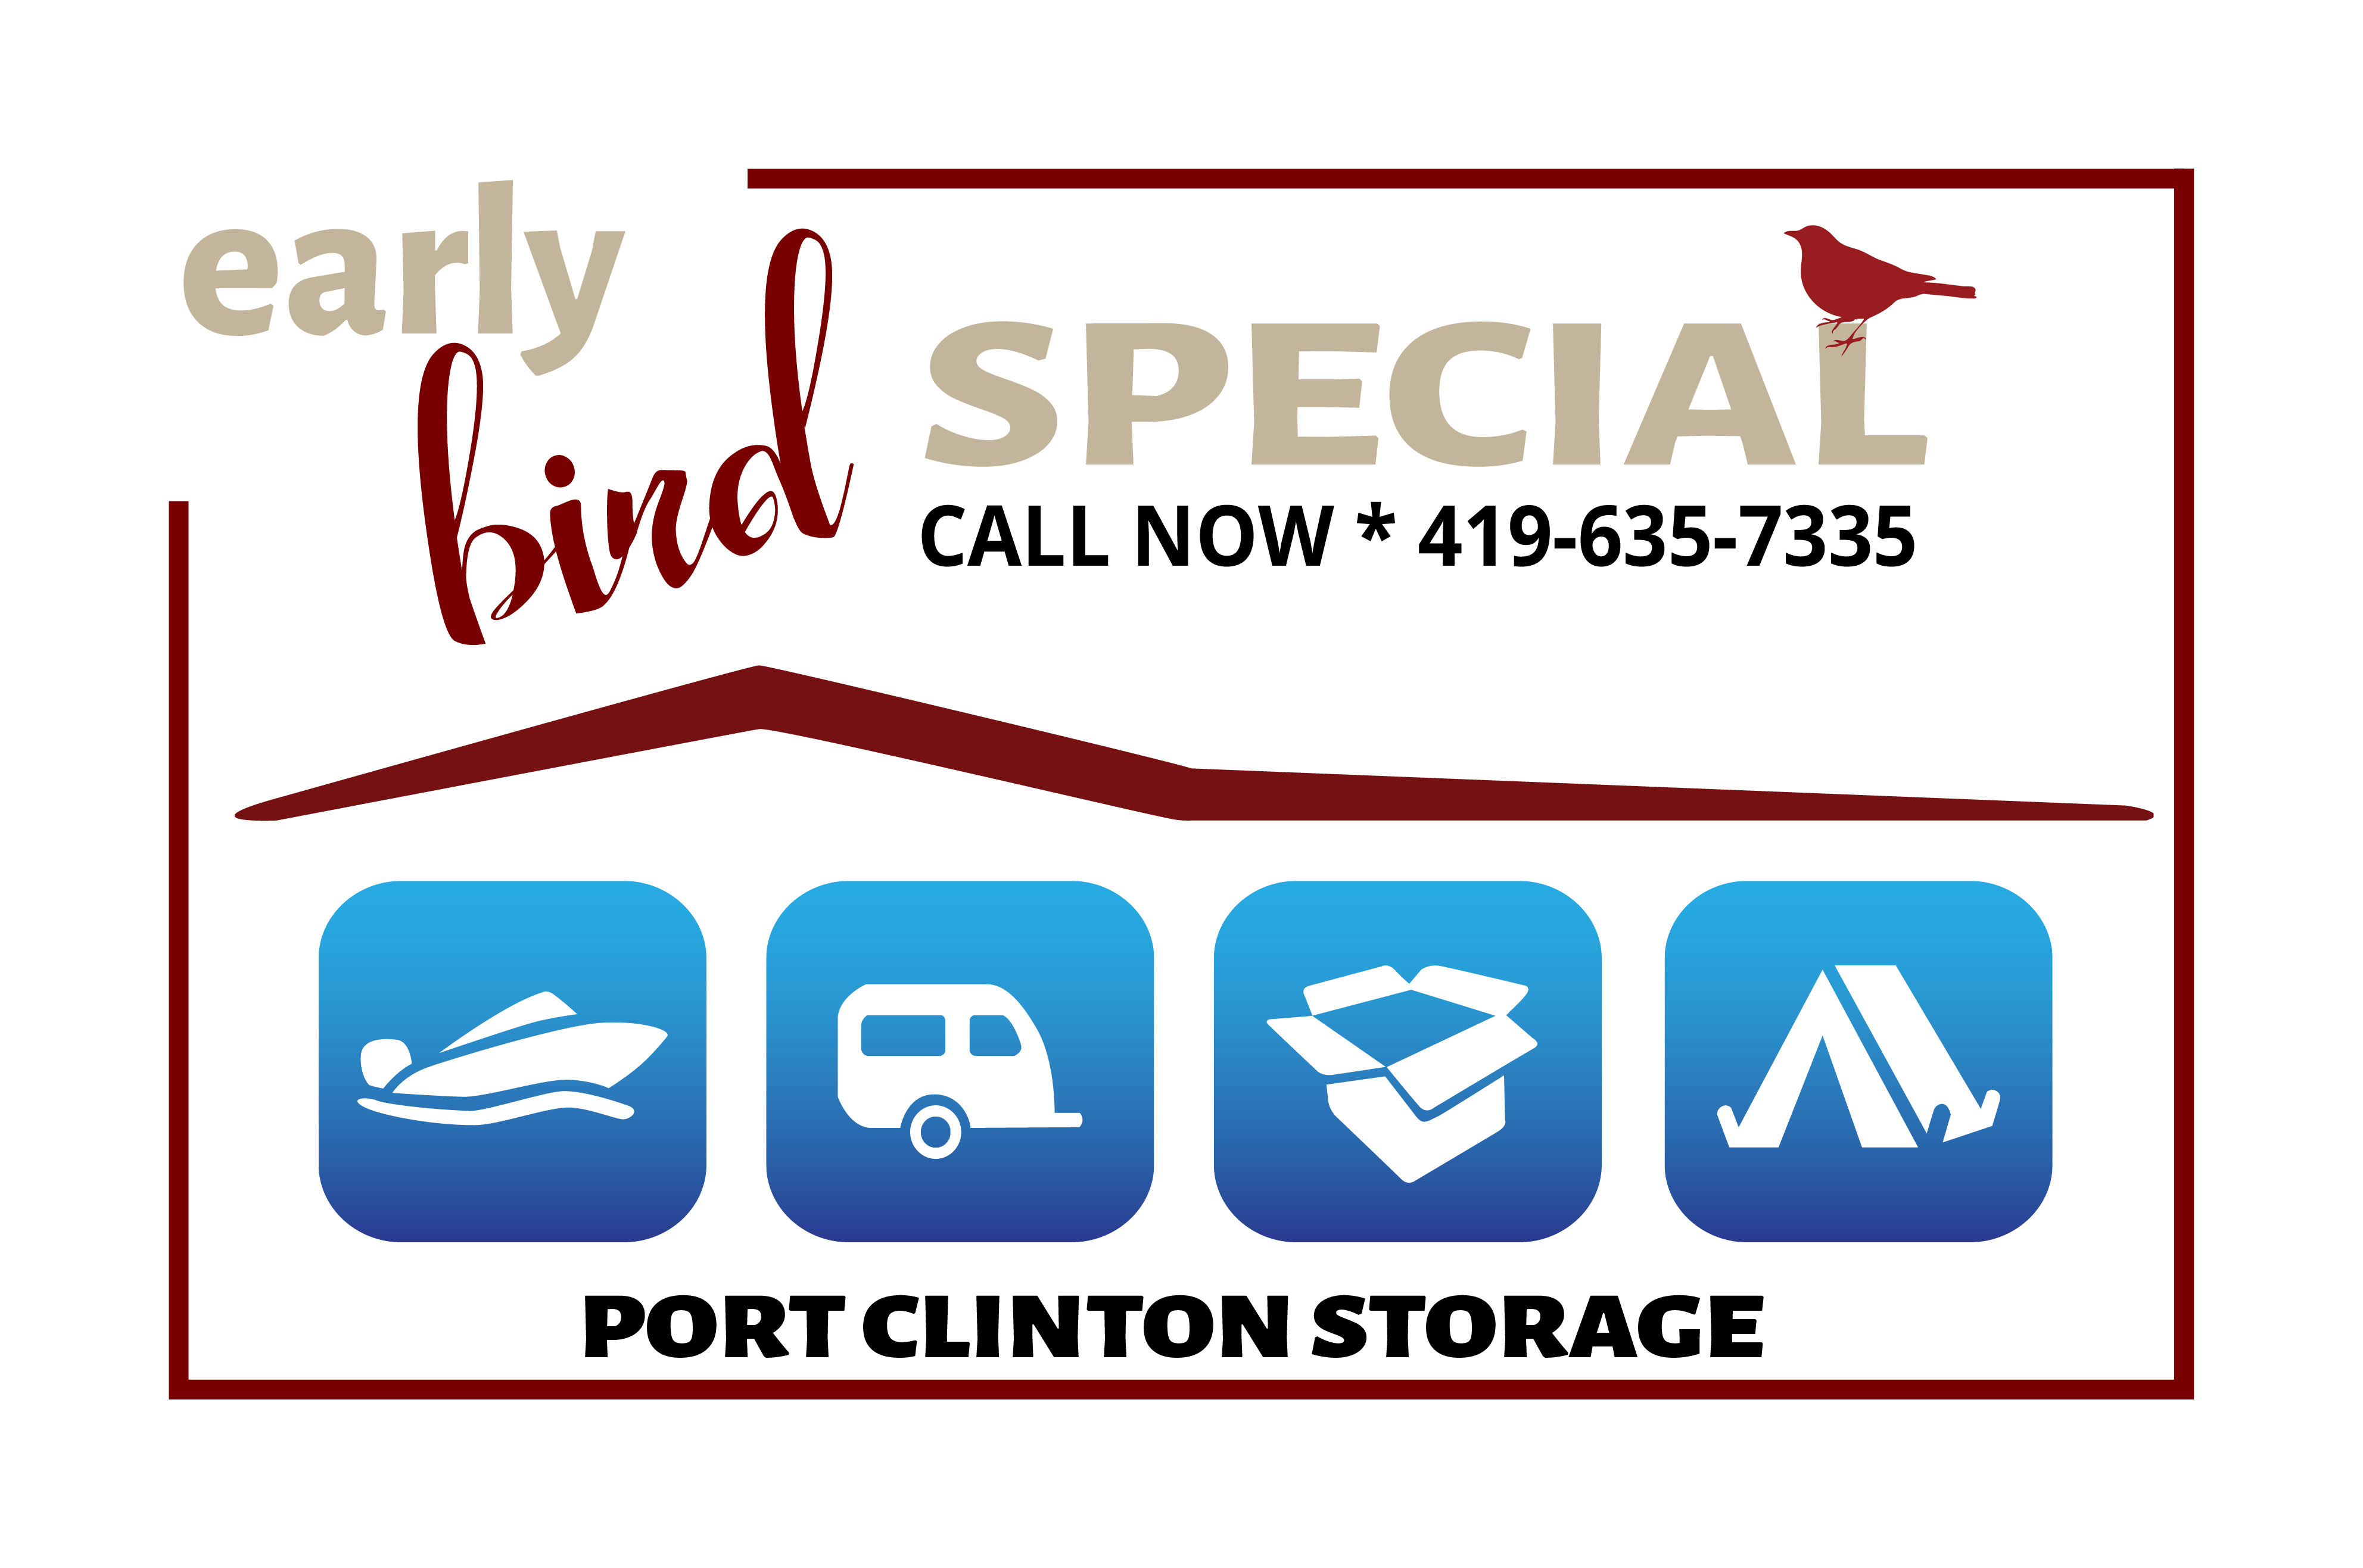 Port Clinton Storage's Early Bird Special Discount Flyer